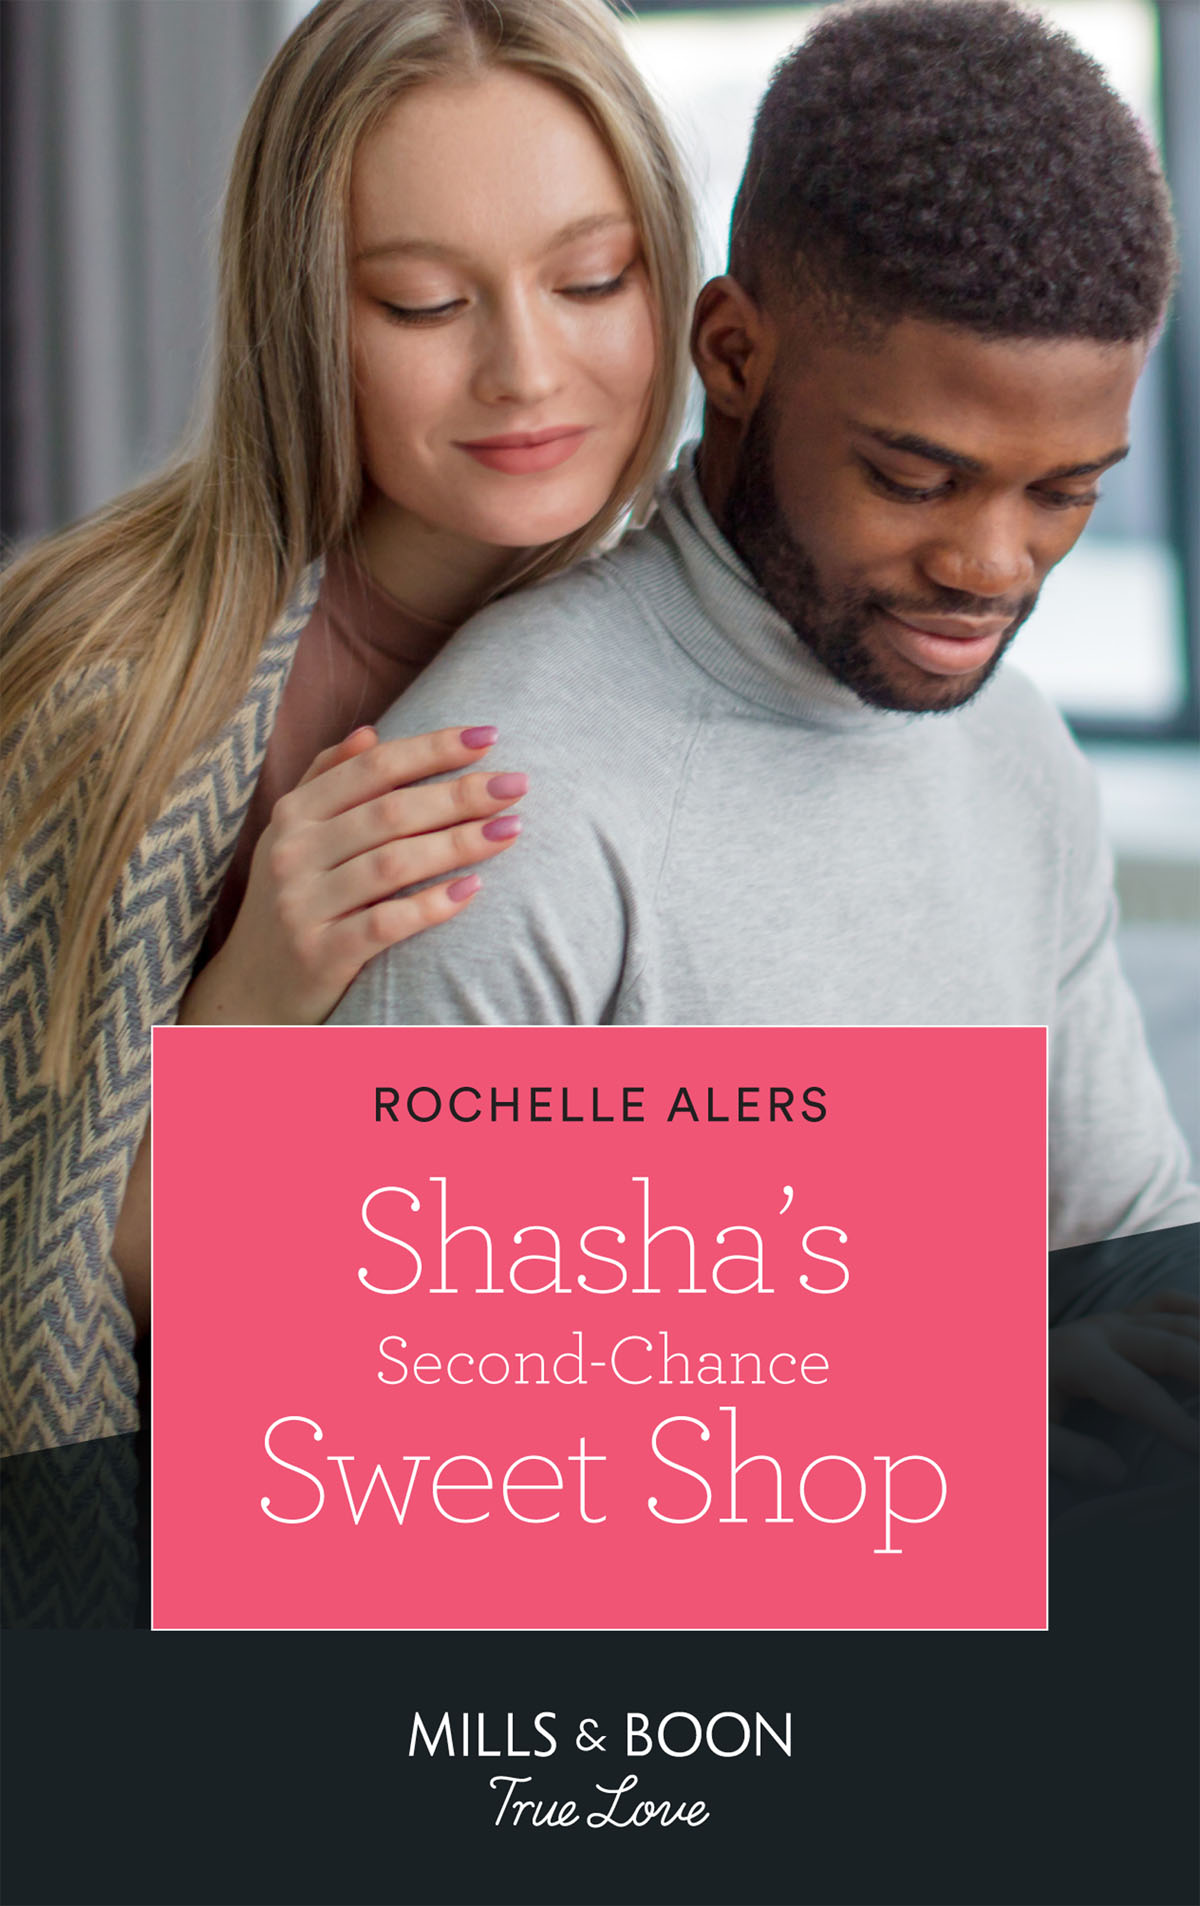 Rochelle Alers Second-Chance Sweet Shop цена и фото